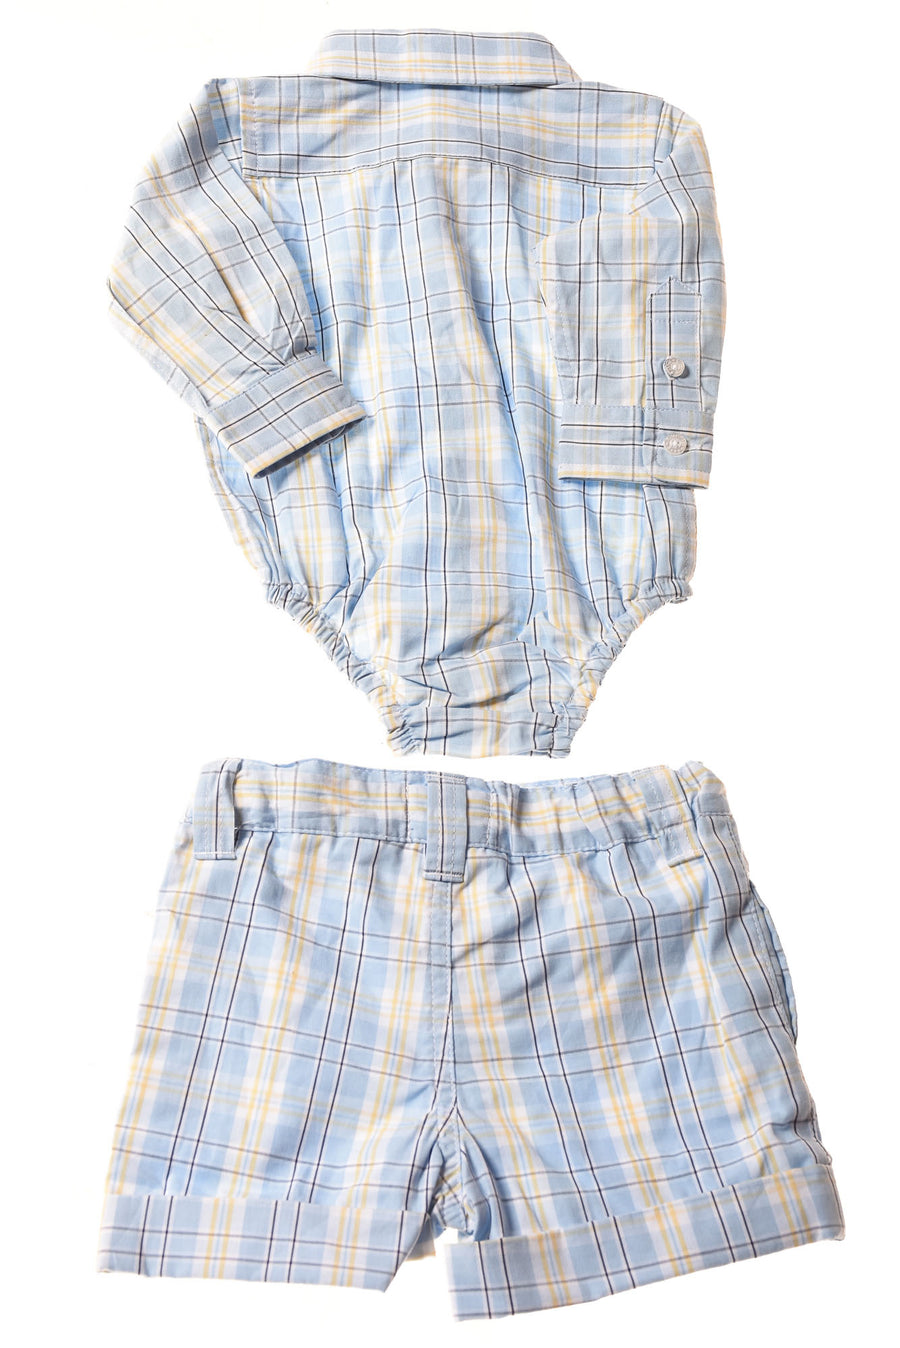 NEW Hartstrings Baby Baby Boy's 2Pc. Outfit 3-6 Months Blue/Plaid